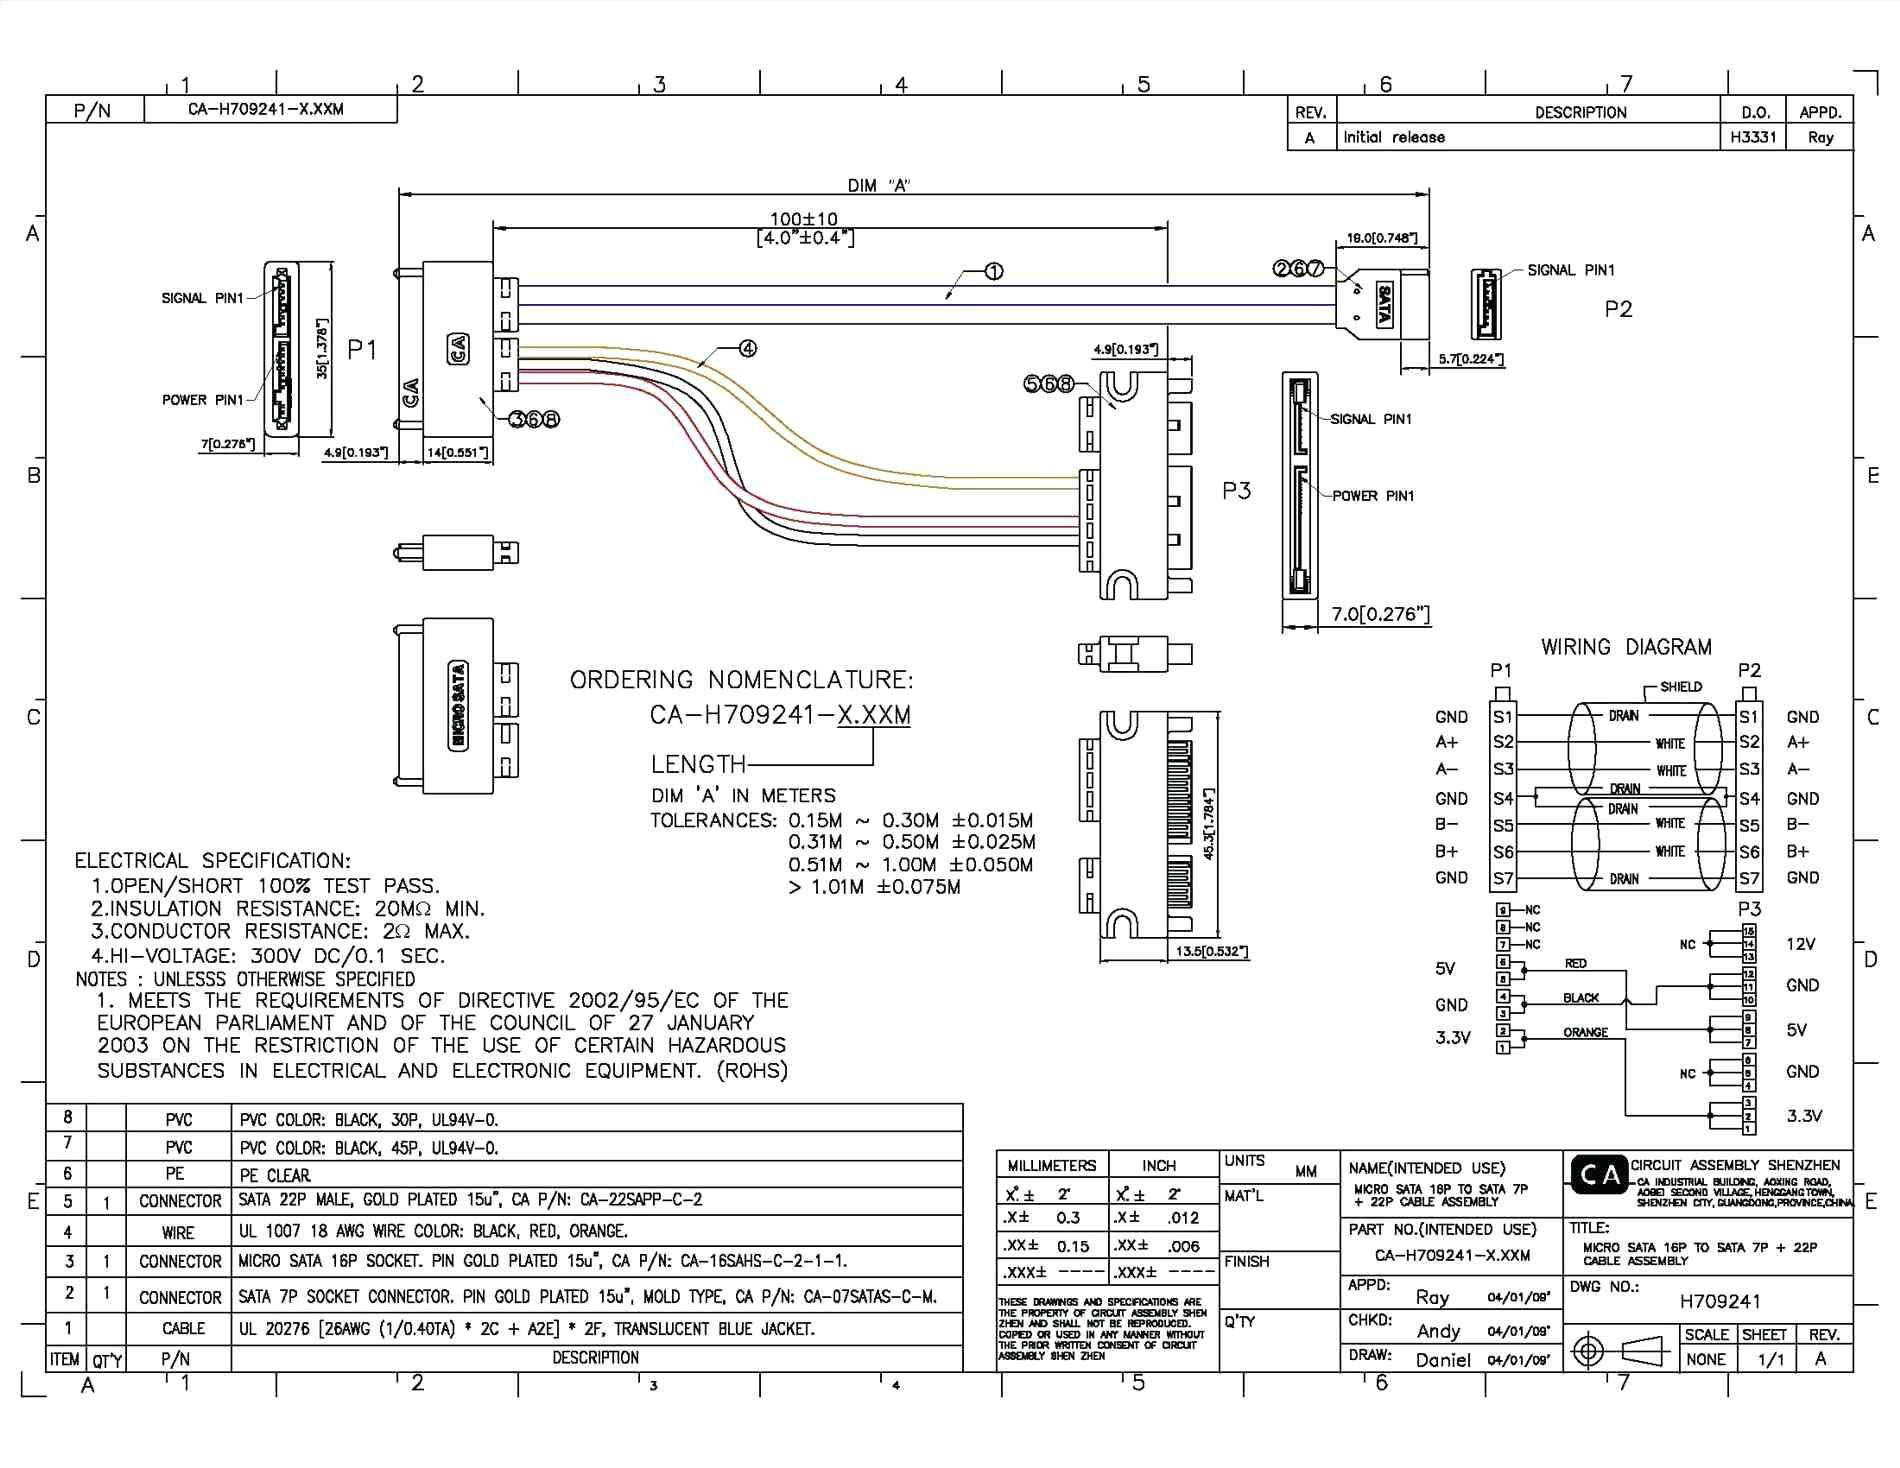 Sata To Usb Cable Wiring Diagram Copy Usb Serial Wiring Diagram I To - Wiring Diagram For A Usb Cable